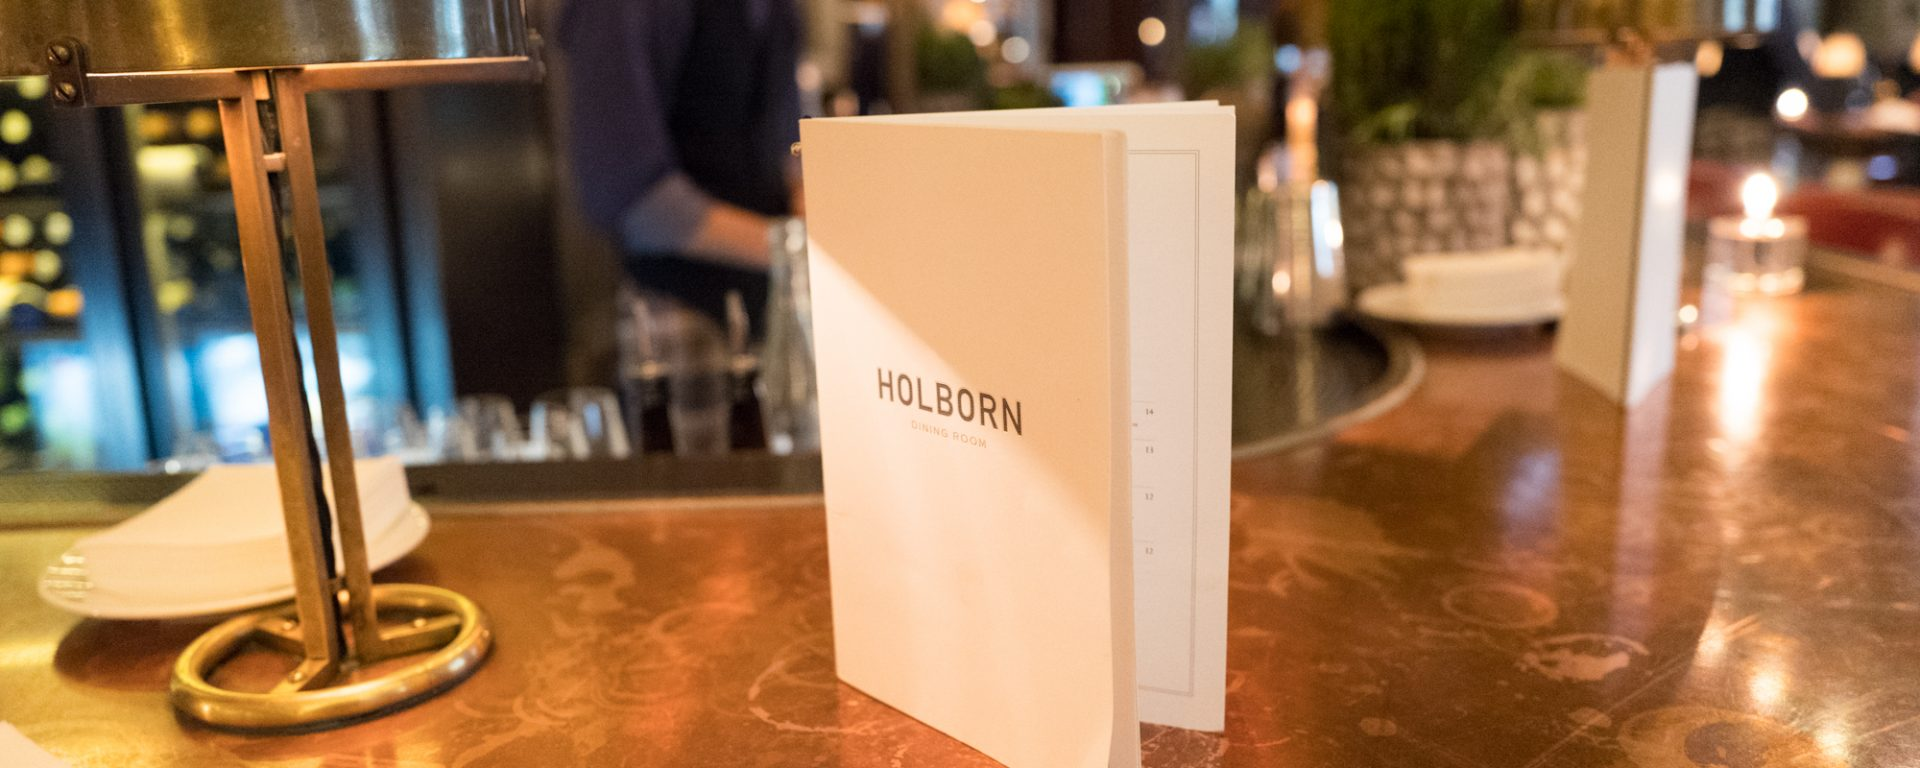 Holborn Dining Room Gin Bar Review